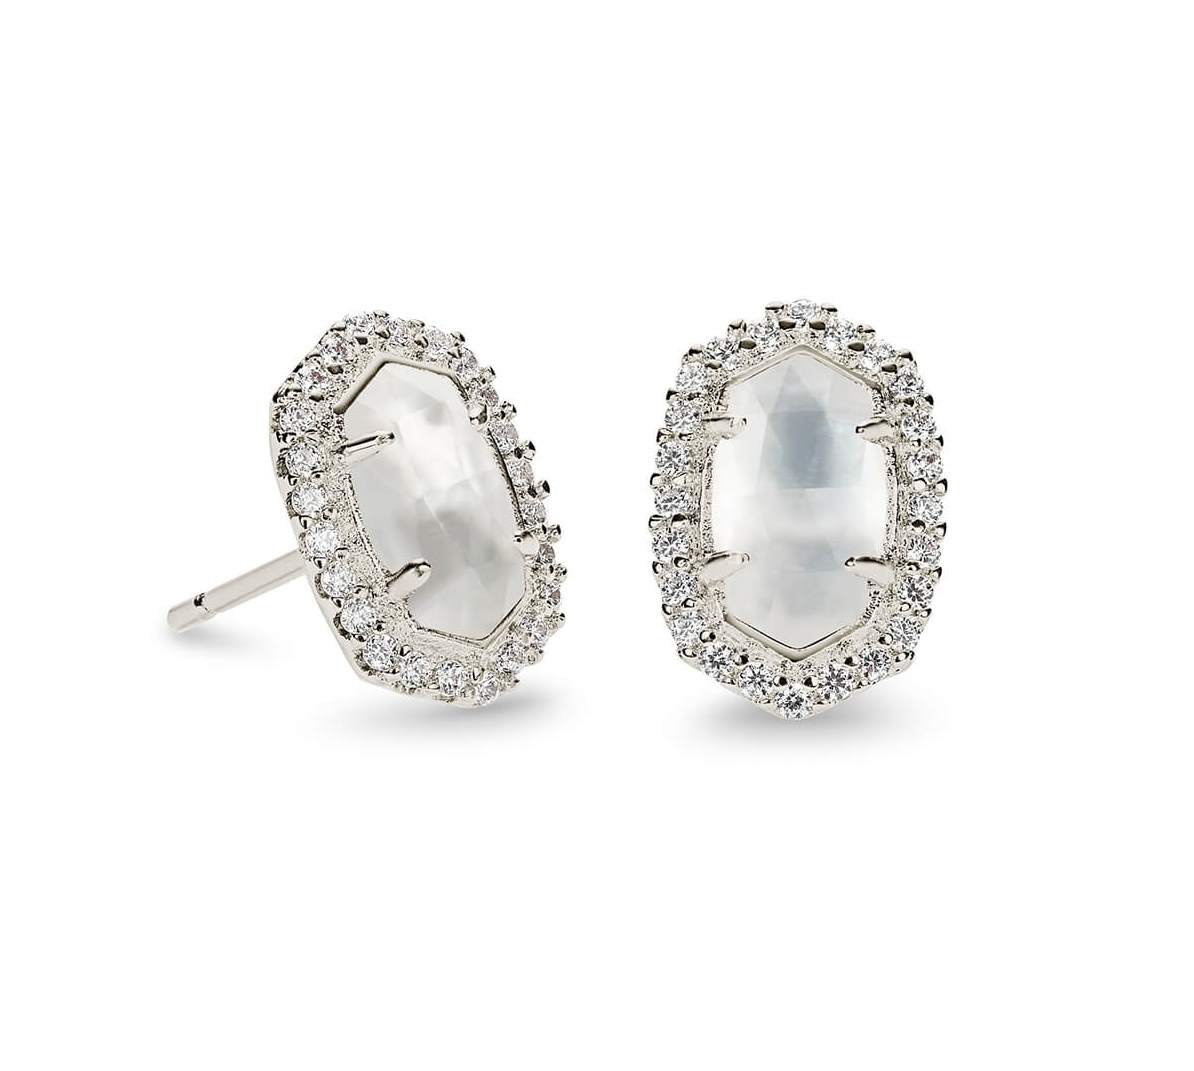 Kendra Scott Cade Silver Stud Earrings in Ivory Pearl